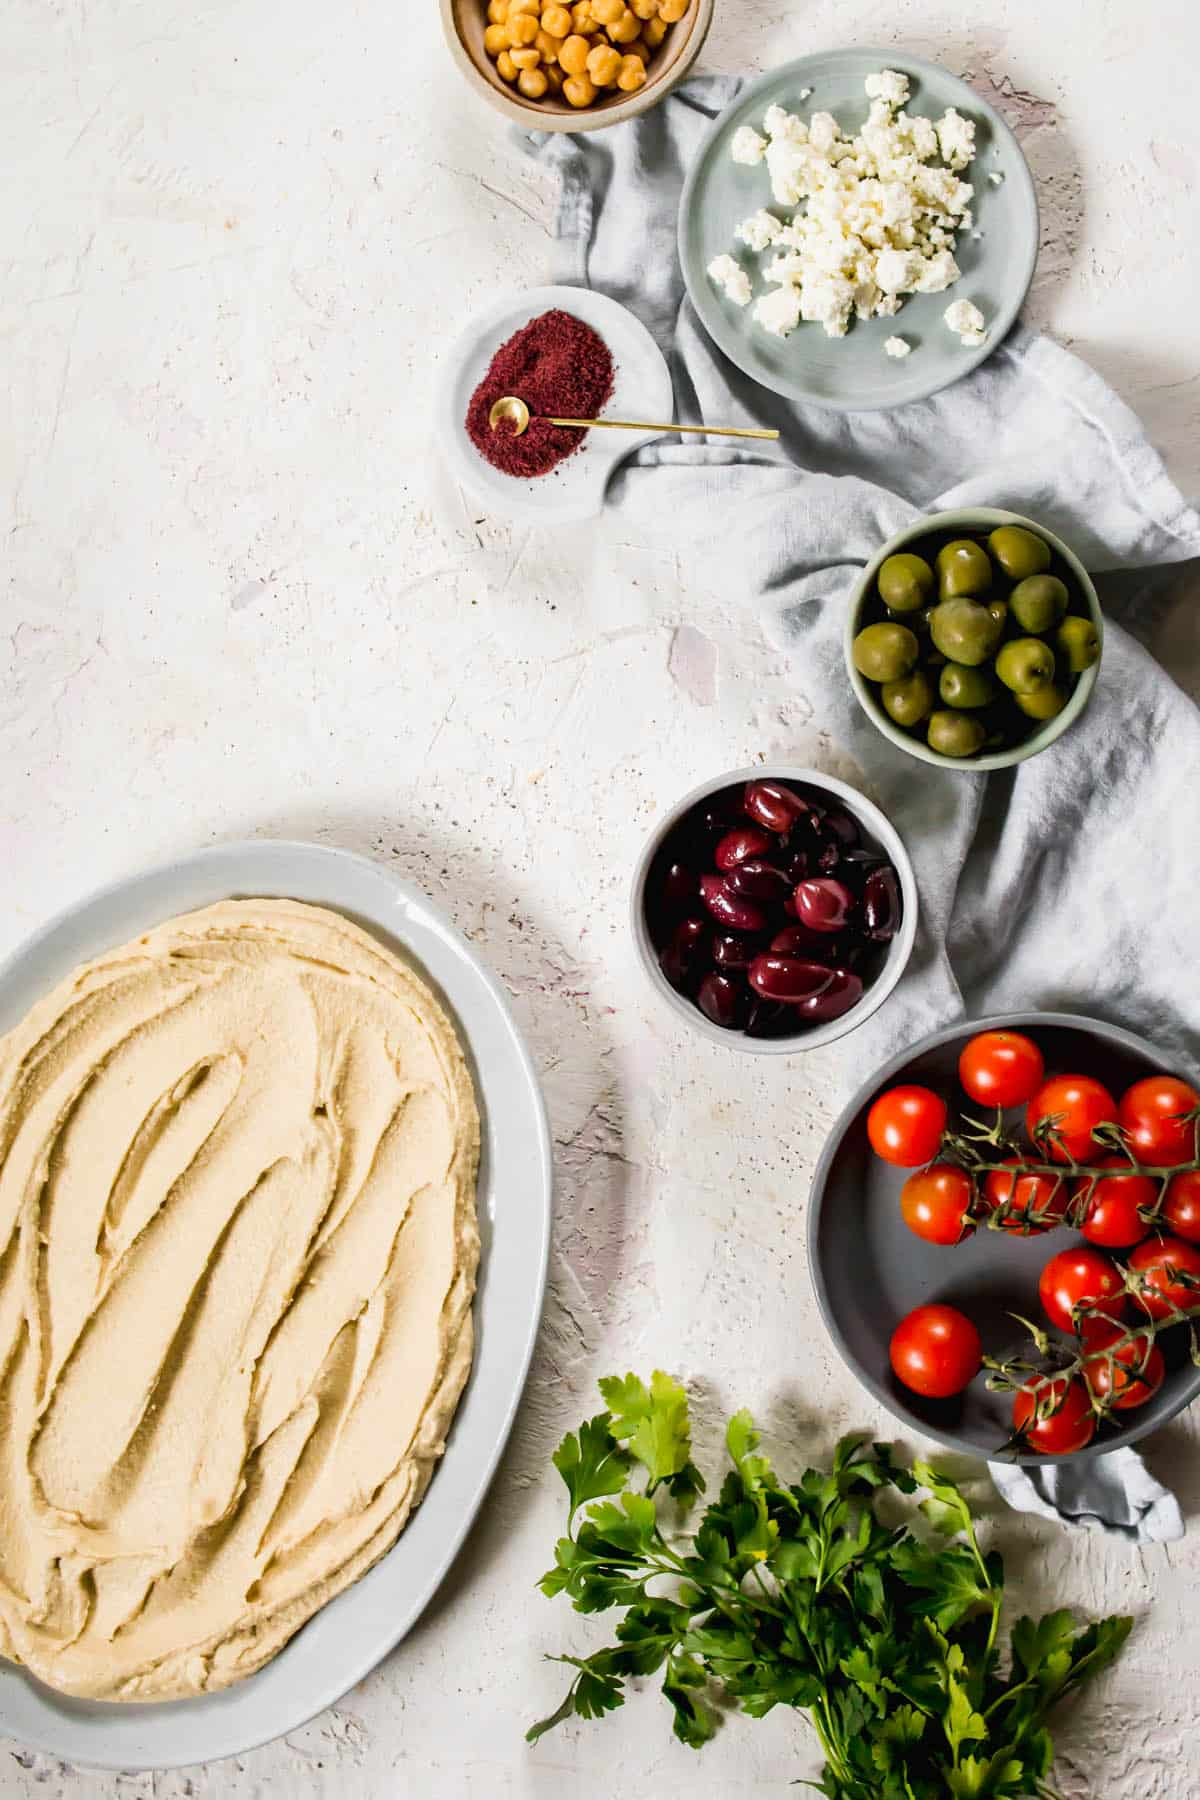 Toppings for The Best Homemade Loaded Hummus